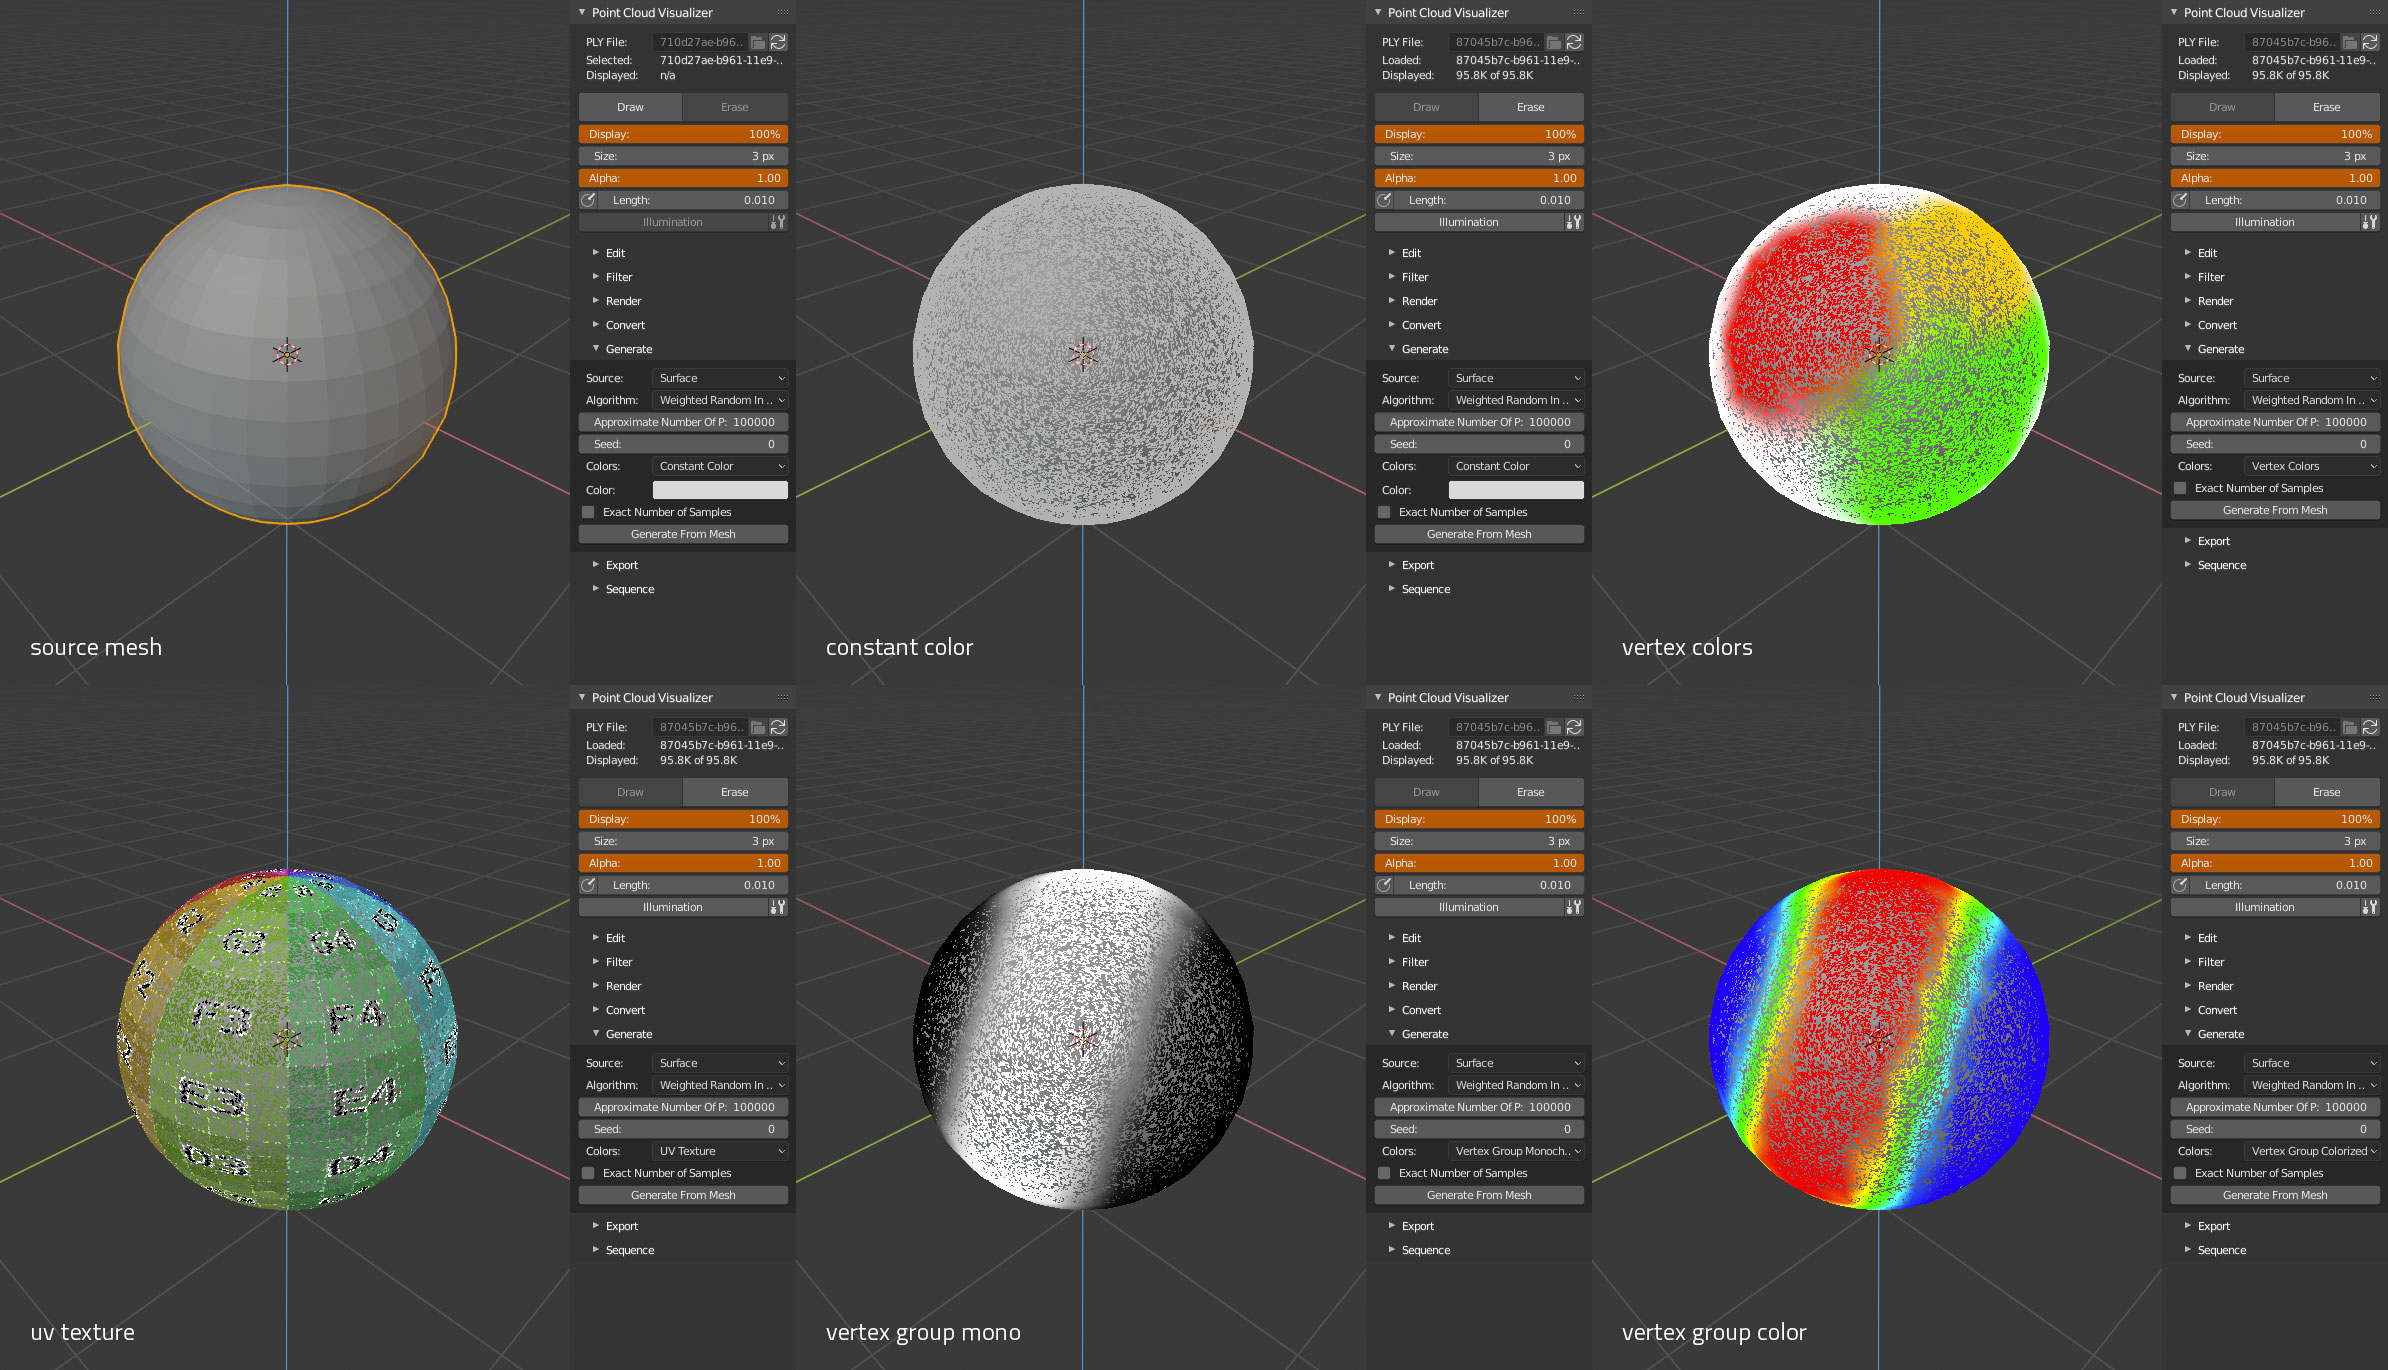 Point Cloud Visualizer - Released Scripts and Themes